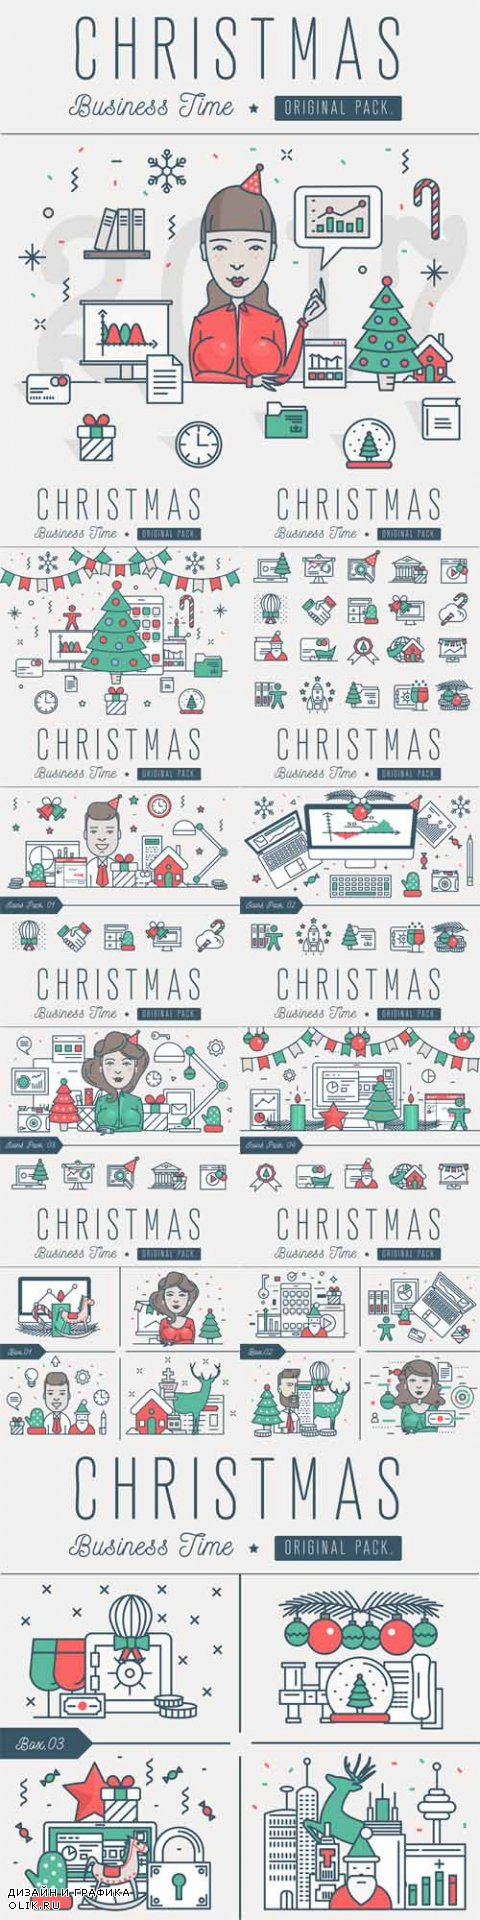 Vector Modern Excellent Happy Christmas Business Time